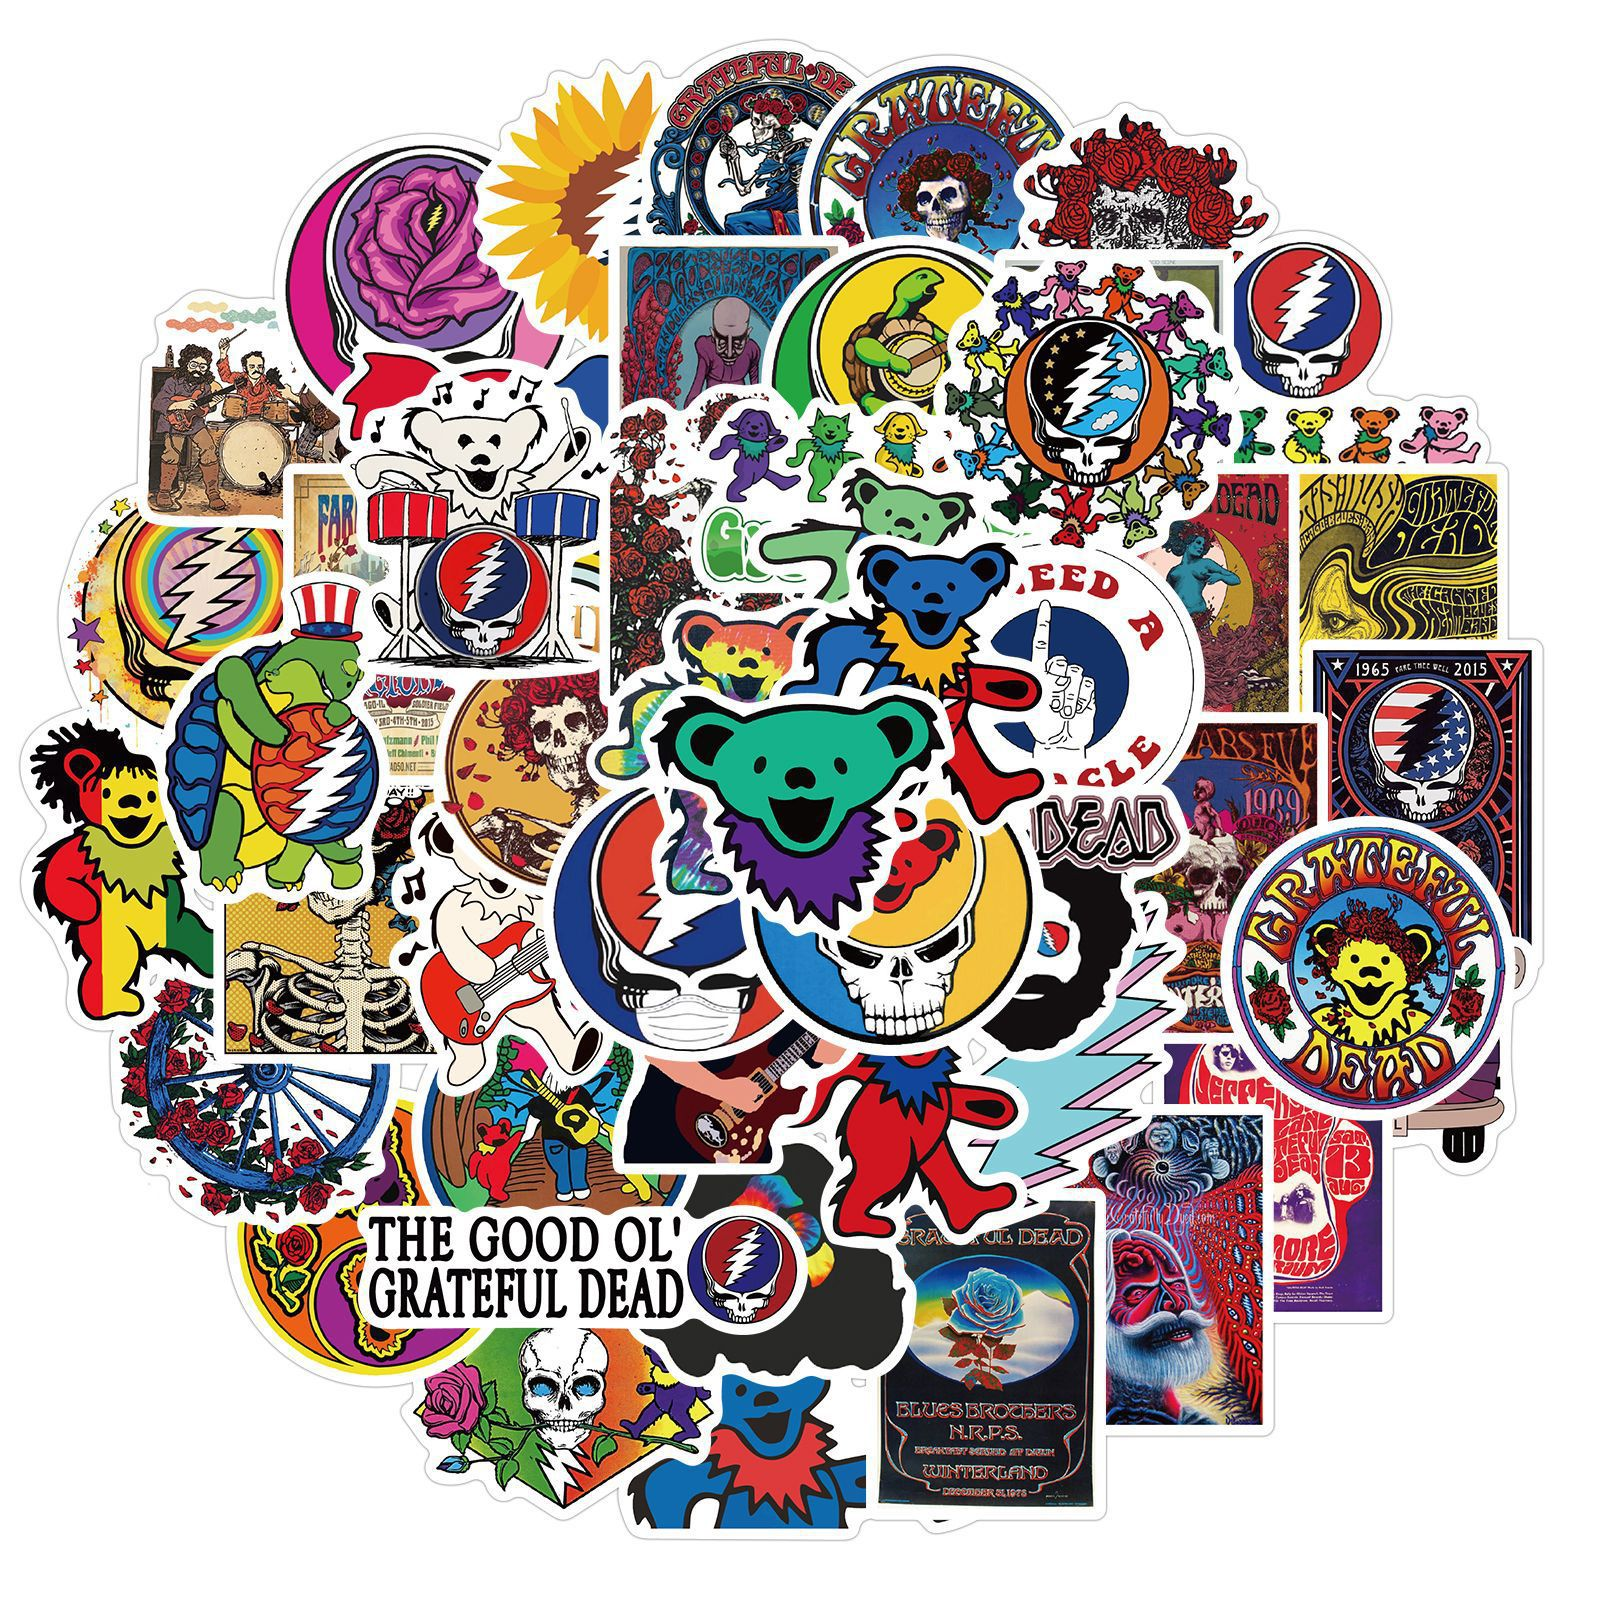 10/50pcs Popular Singers Greatful Dead Graffiti Stickers For Skateboard Box Bicycle Computer Notebook Car Decal Children's Toy